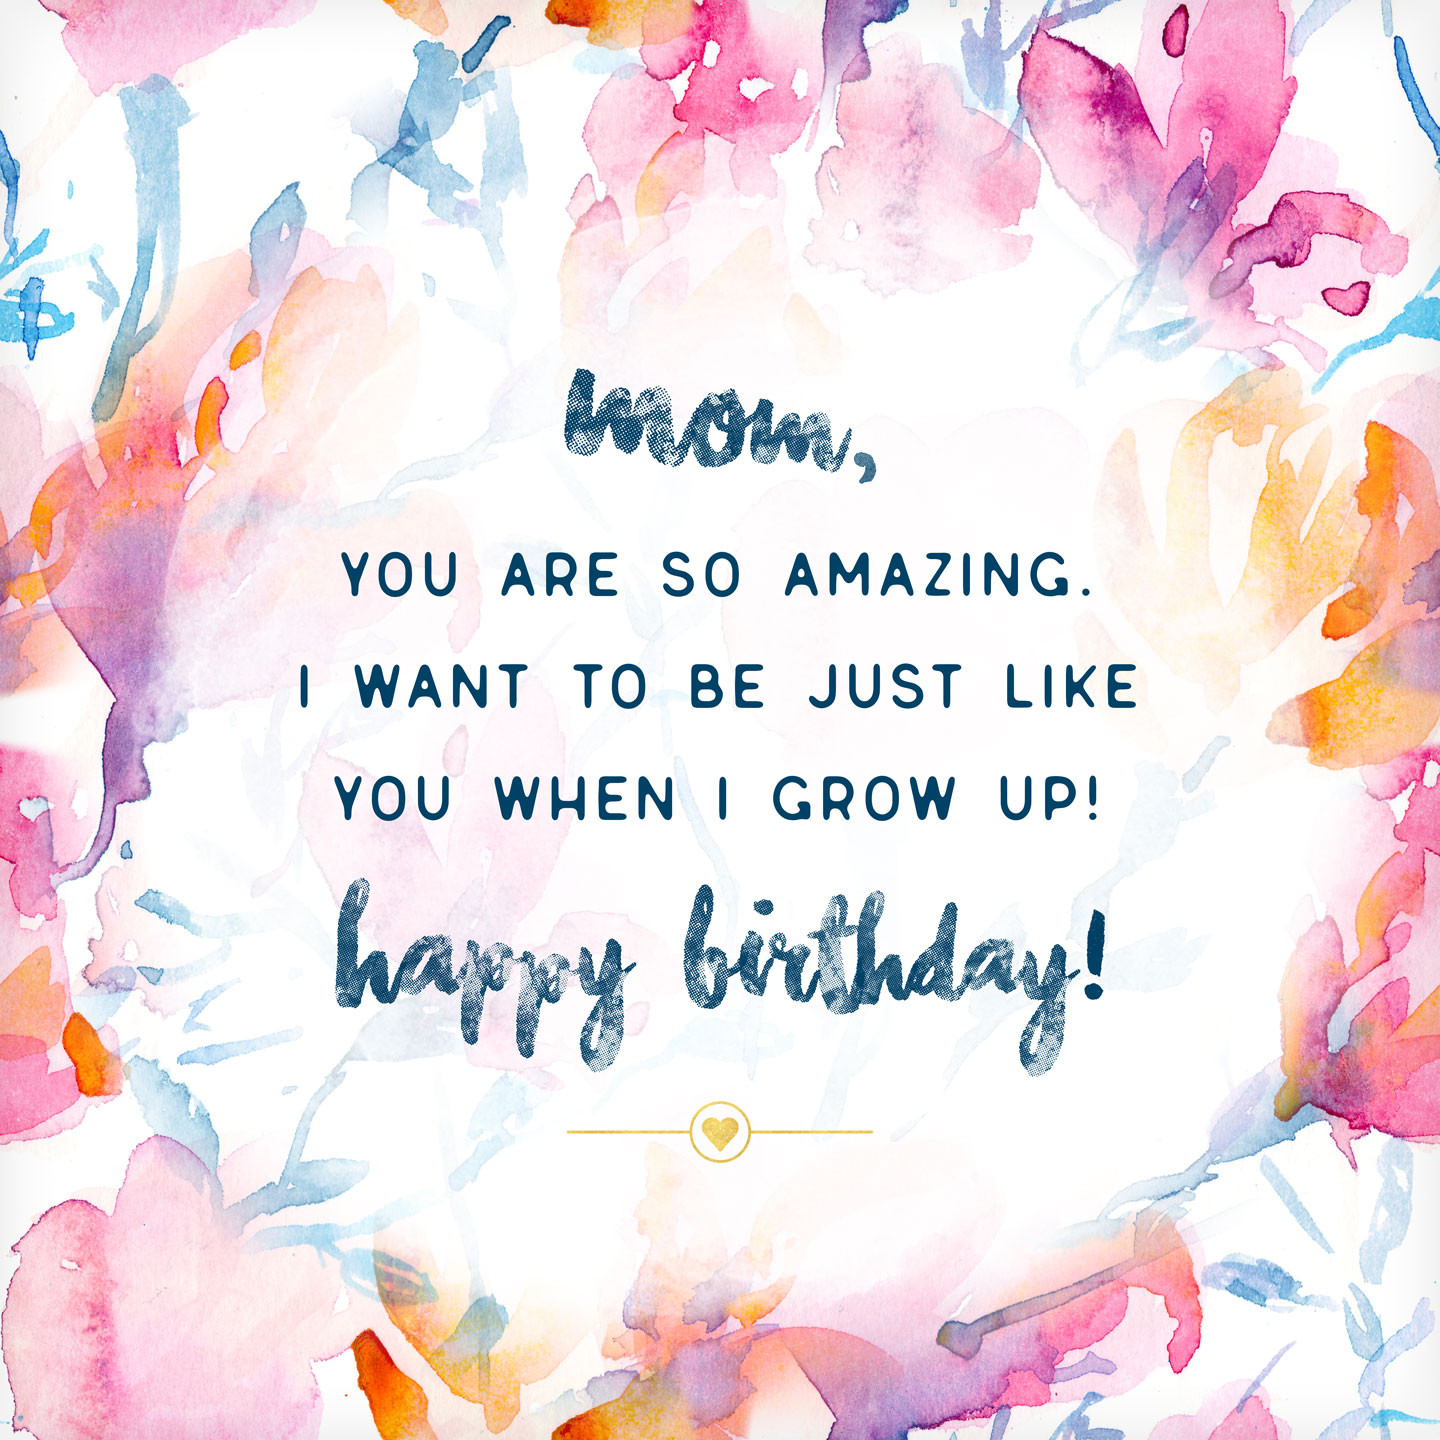 Best ideas about Birthday Wishes Messages . Save or Pin What to Write in a Birthday Card 48 Birthday Messages and Now.